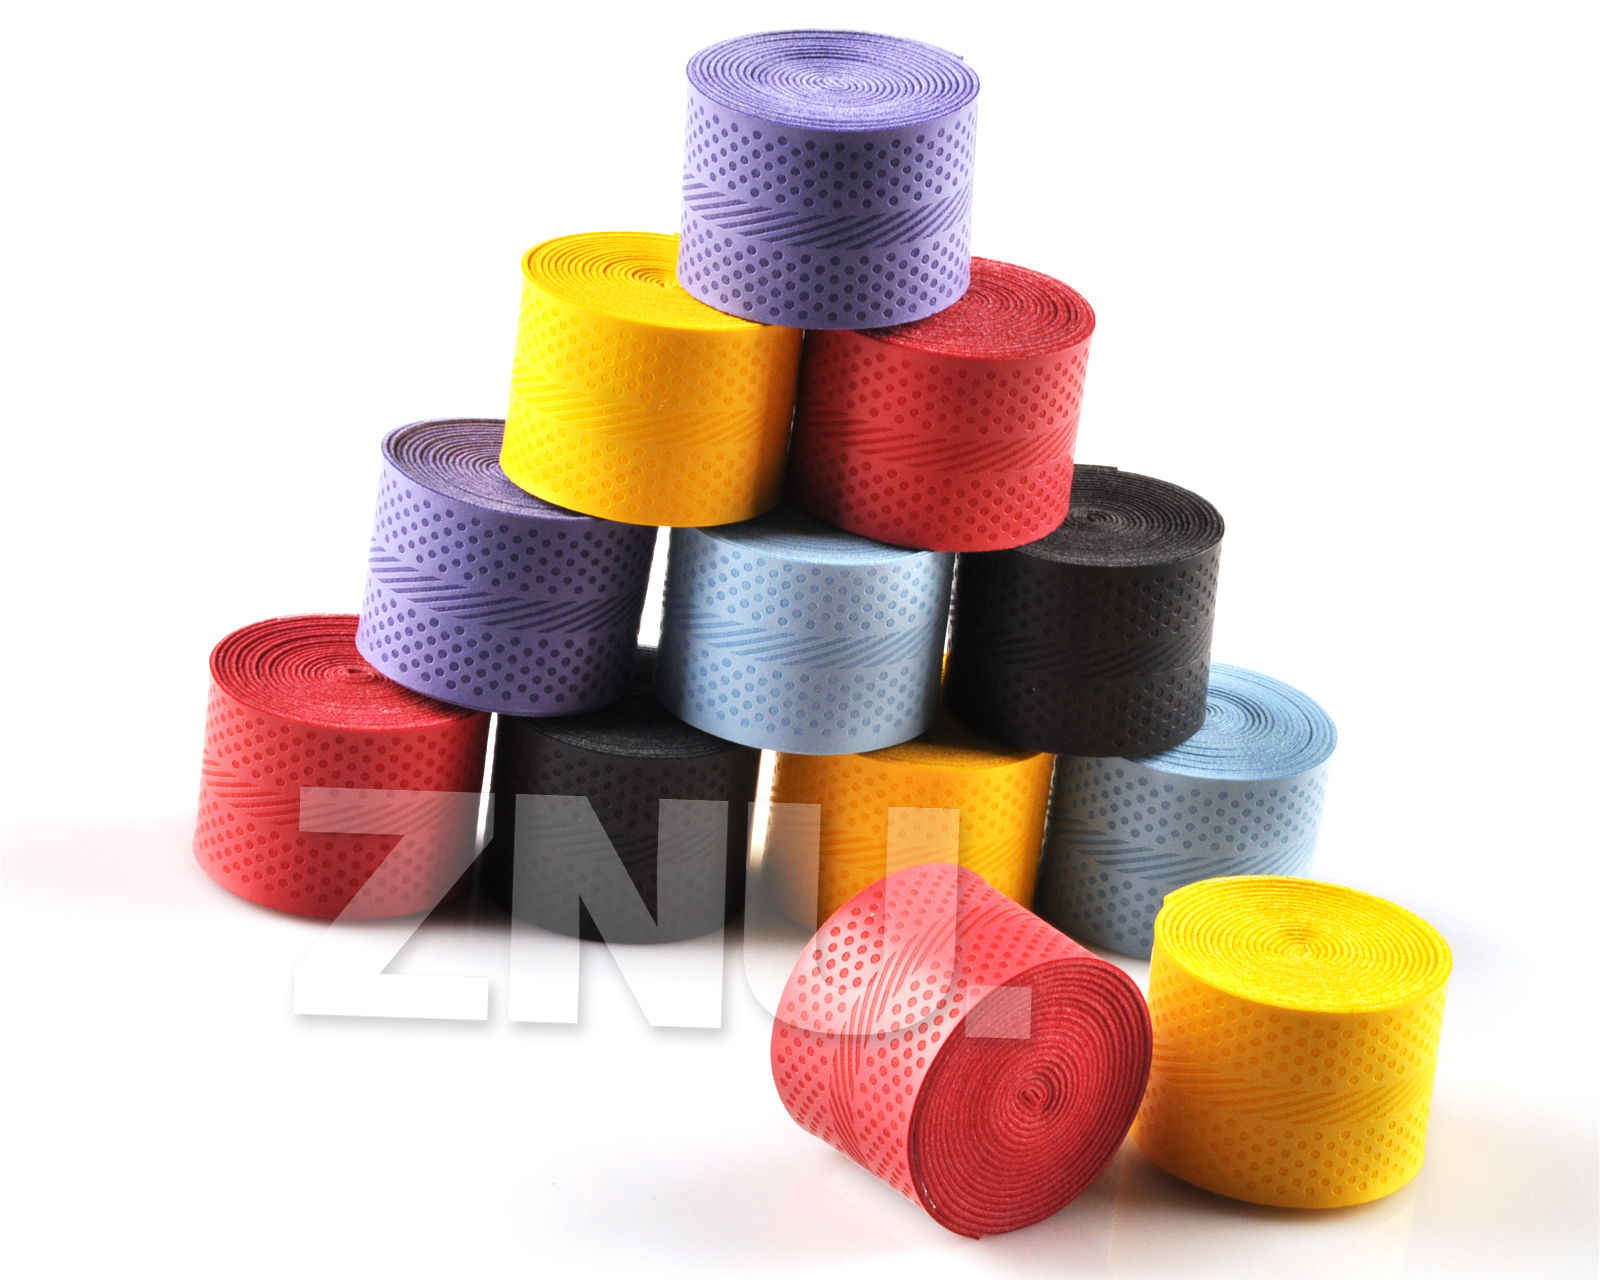 10PCS Sweatband Badminton Tennis Sports Over Grip Griffband Anti-slip Overgrip Racket Outdoor Tape Multicolor Sweat P30